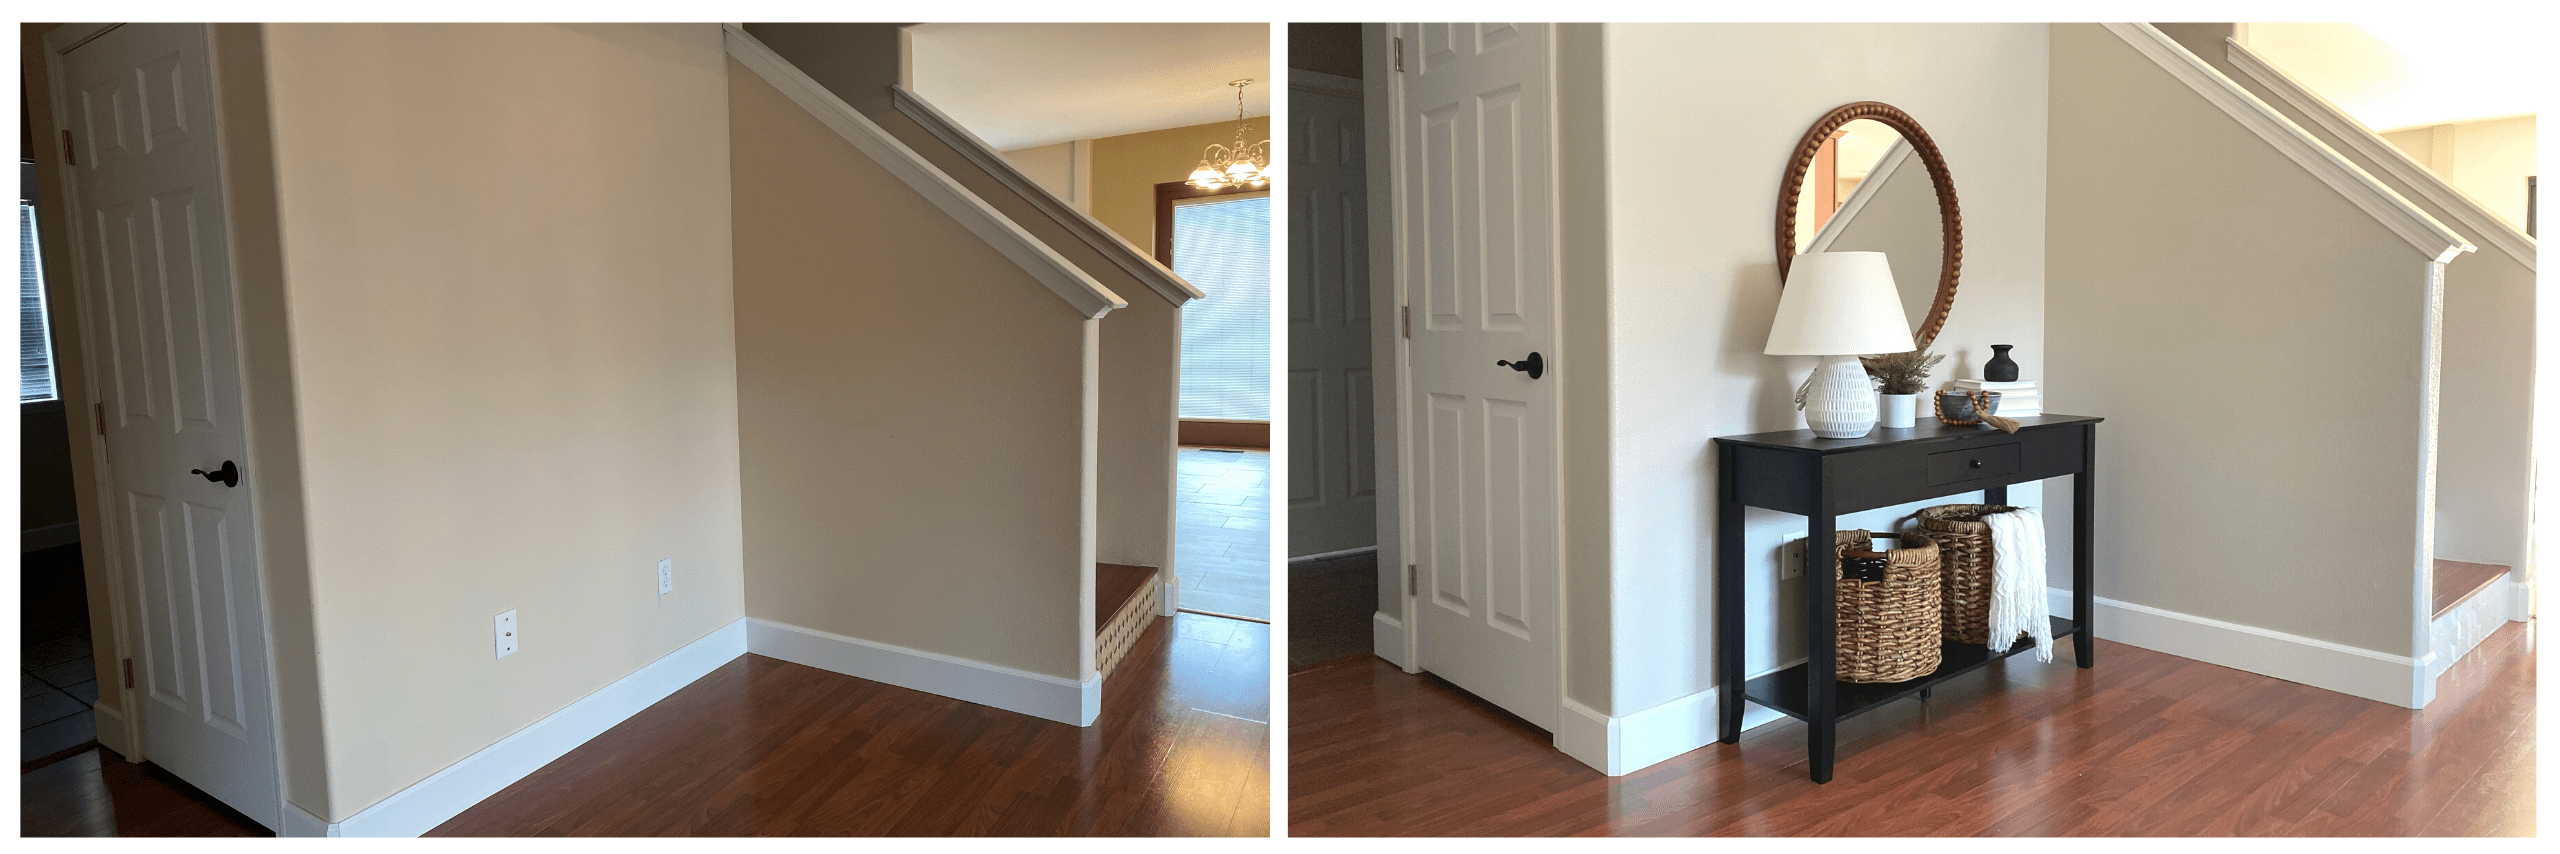 Hallway Before and After Home Staging